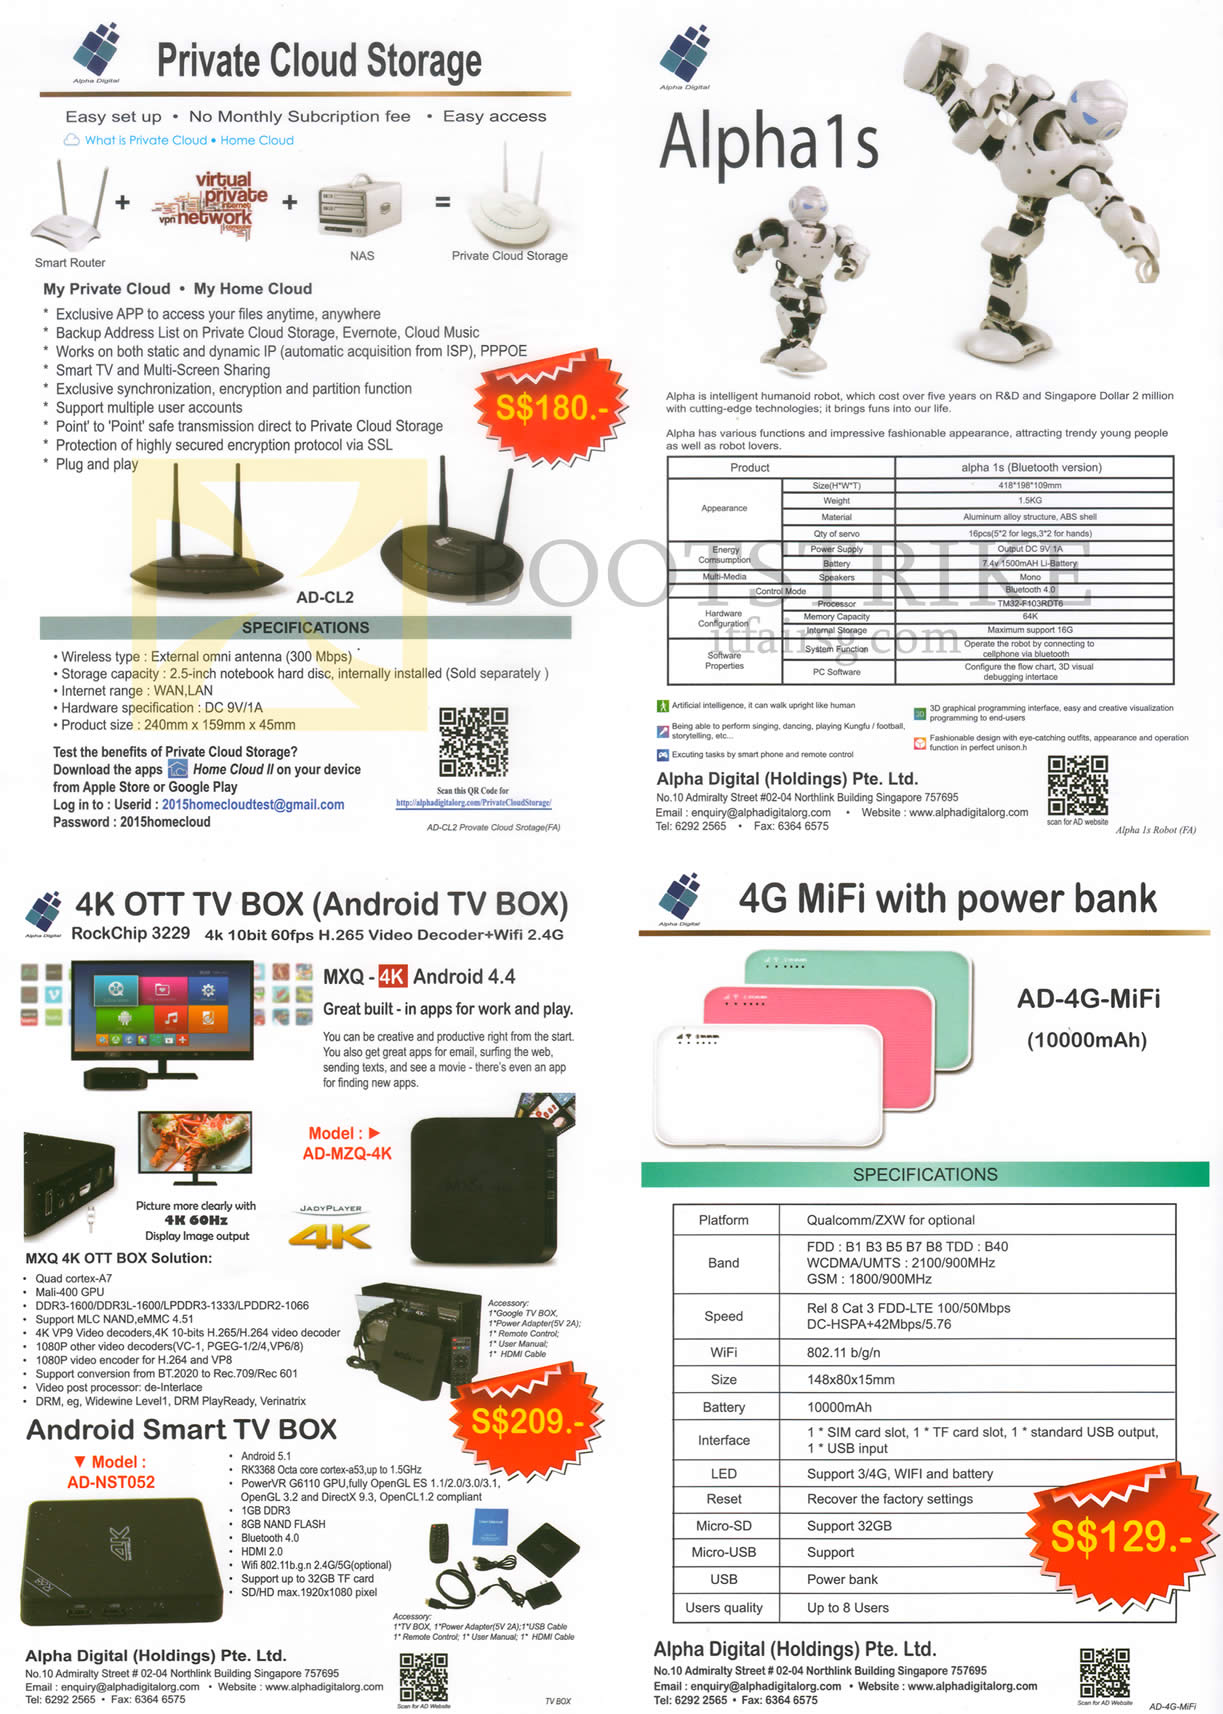 COMEX 2016 price list image brochure of Alpha Digital Private Cloud Storage, Alpha 1s Humanoid Robot, 4K OTT TV Box, 4G MiFi With Power Bank